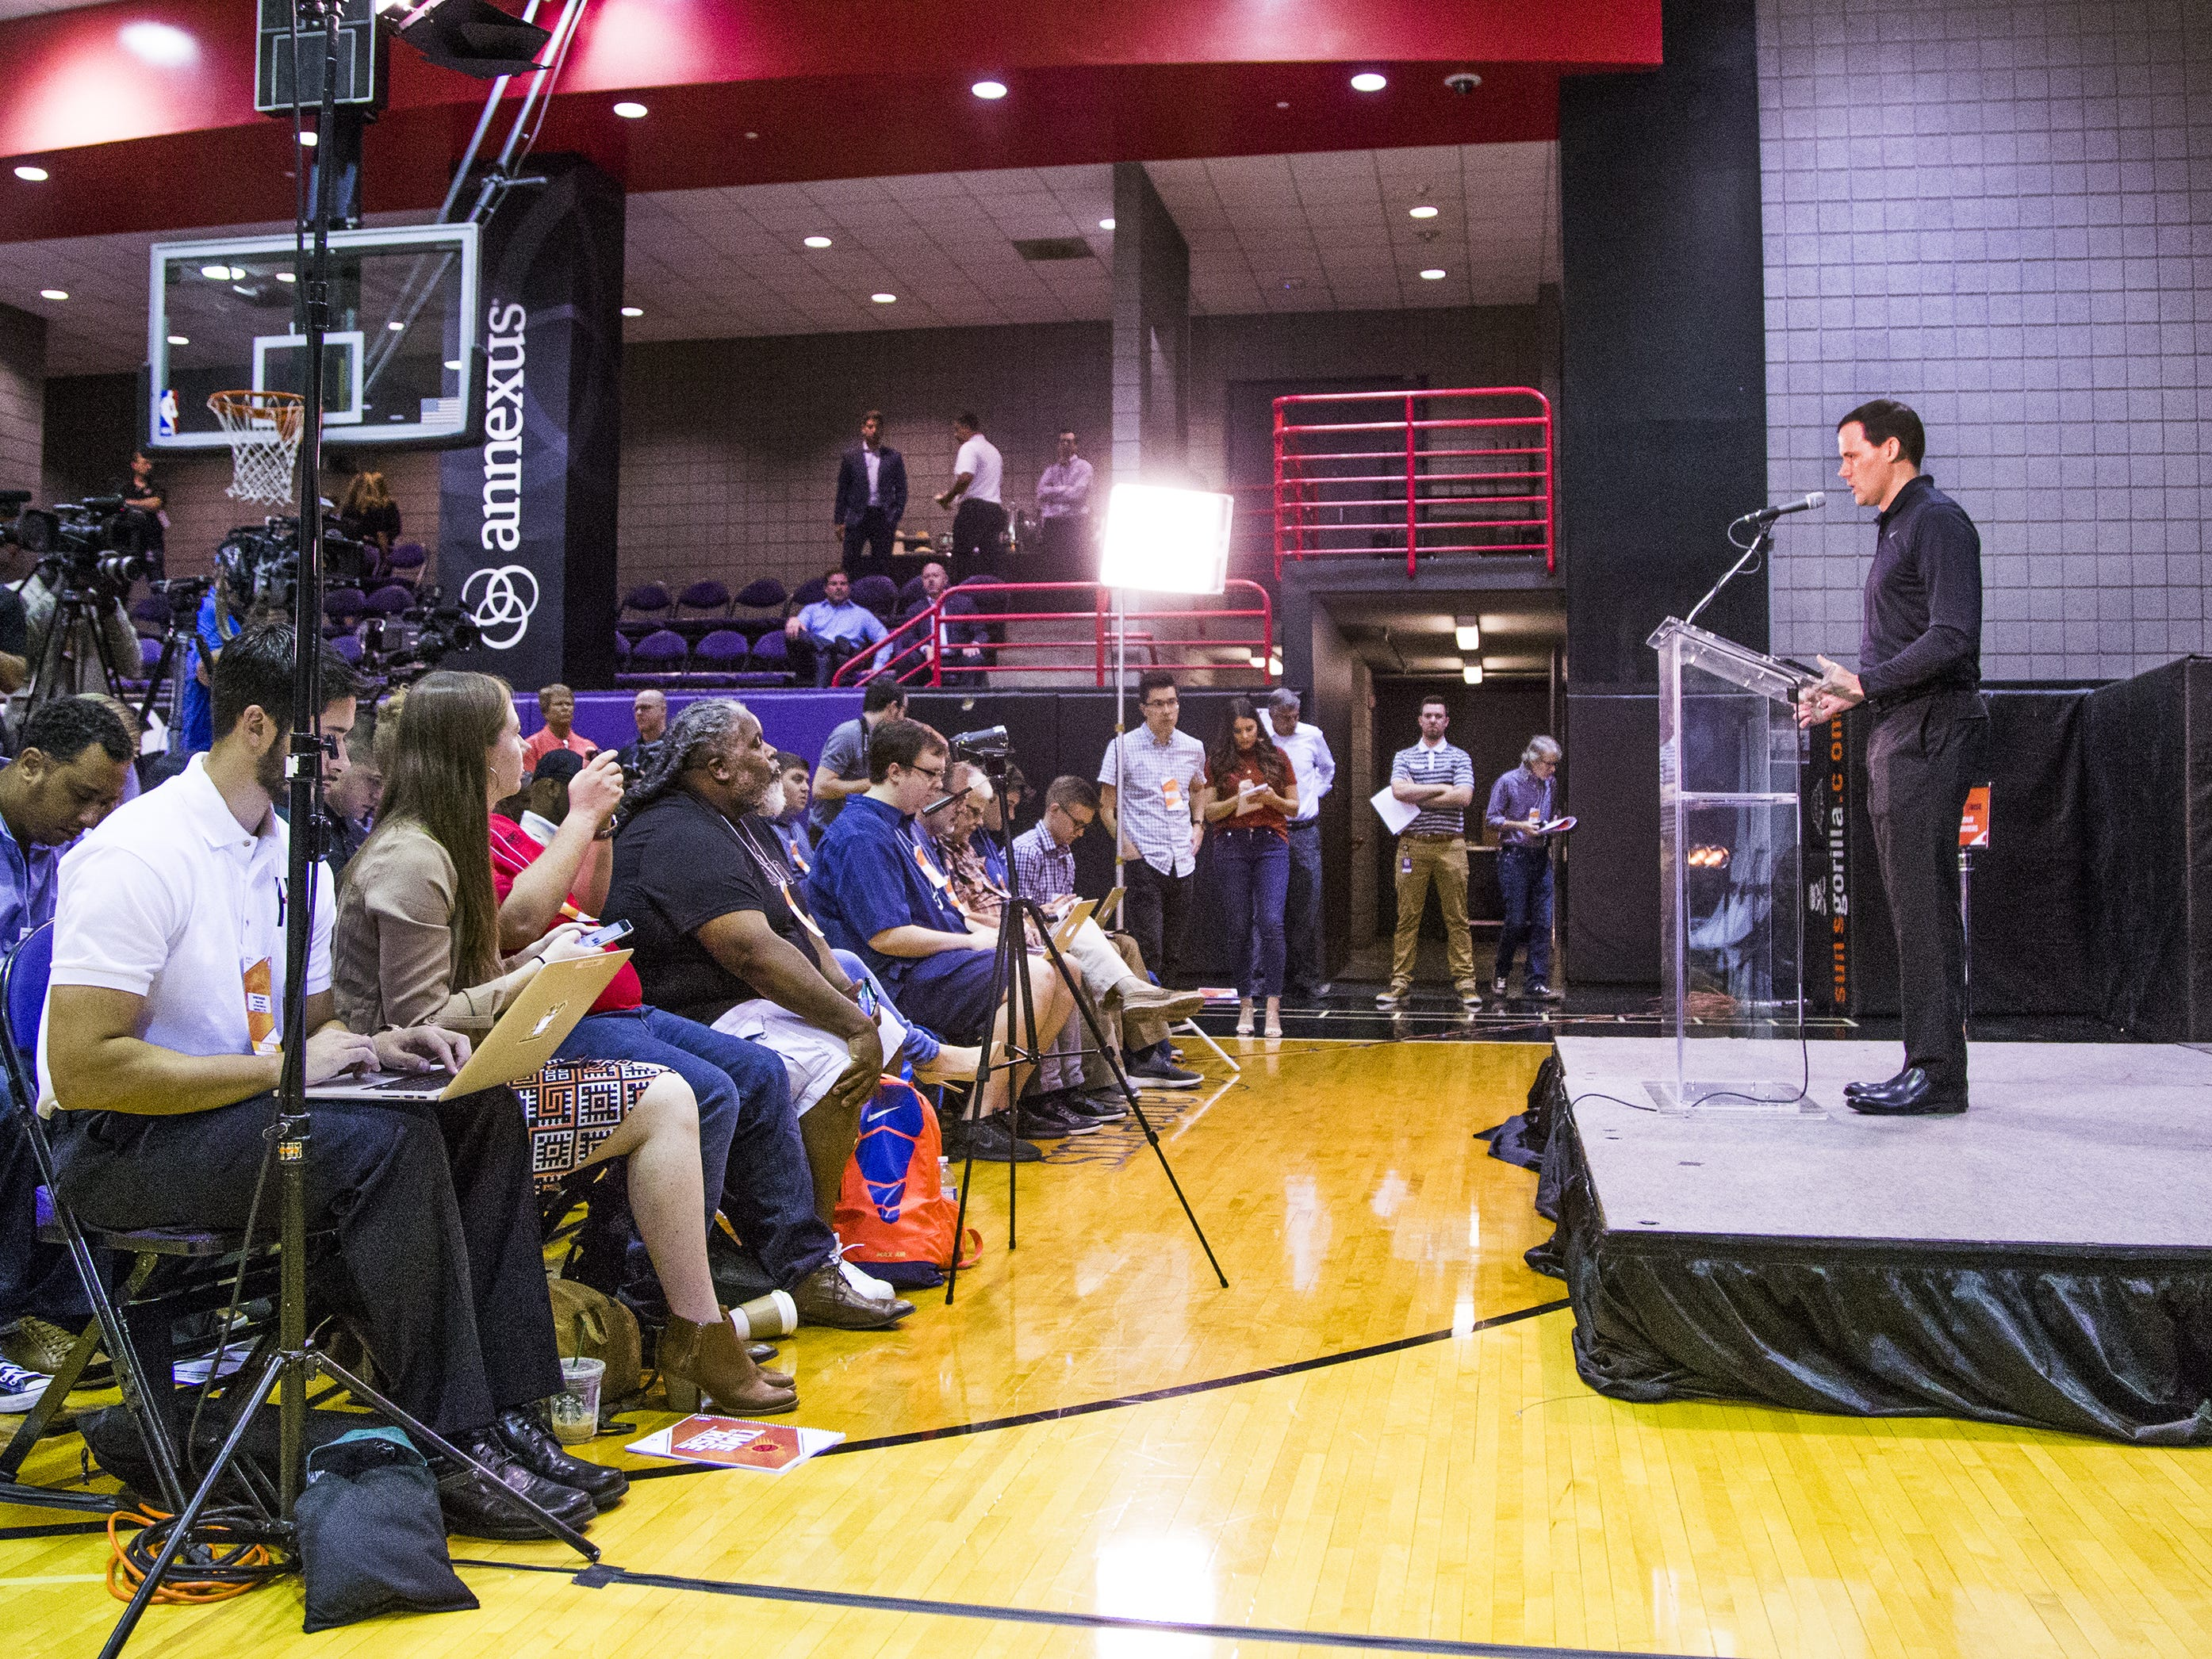 Ryan McDonough, general manager of the Phoenix Suns, addresses the media at Phoenix Suns Media Day at Talking Stick Resort Arena in Phoenix, Monday, September 24, 2018.